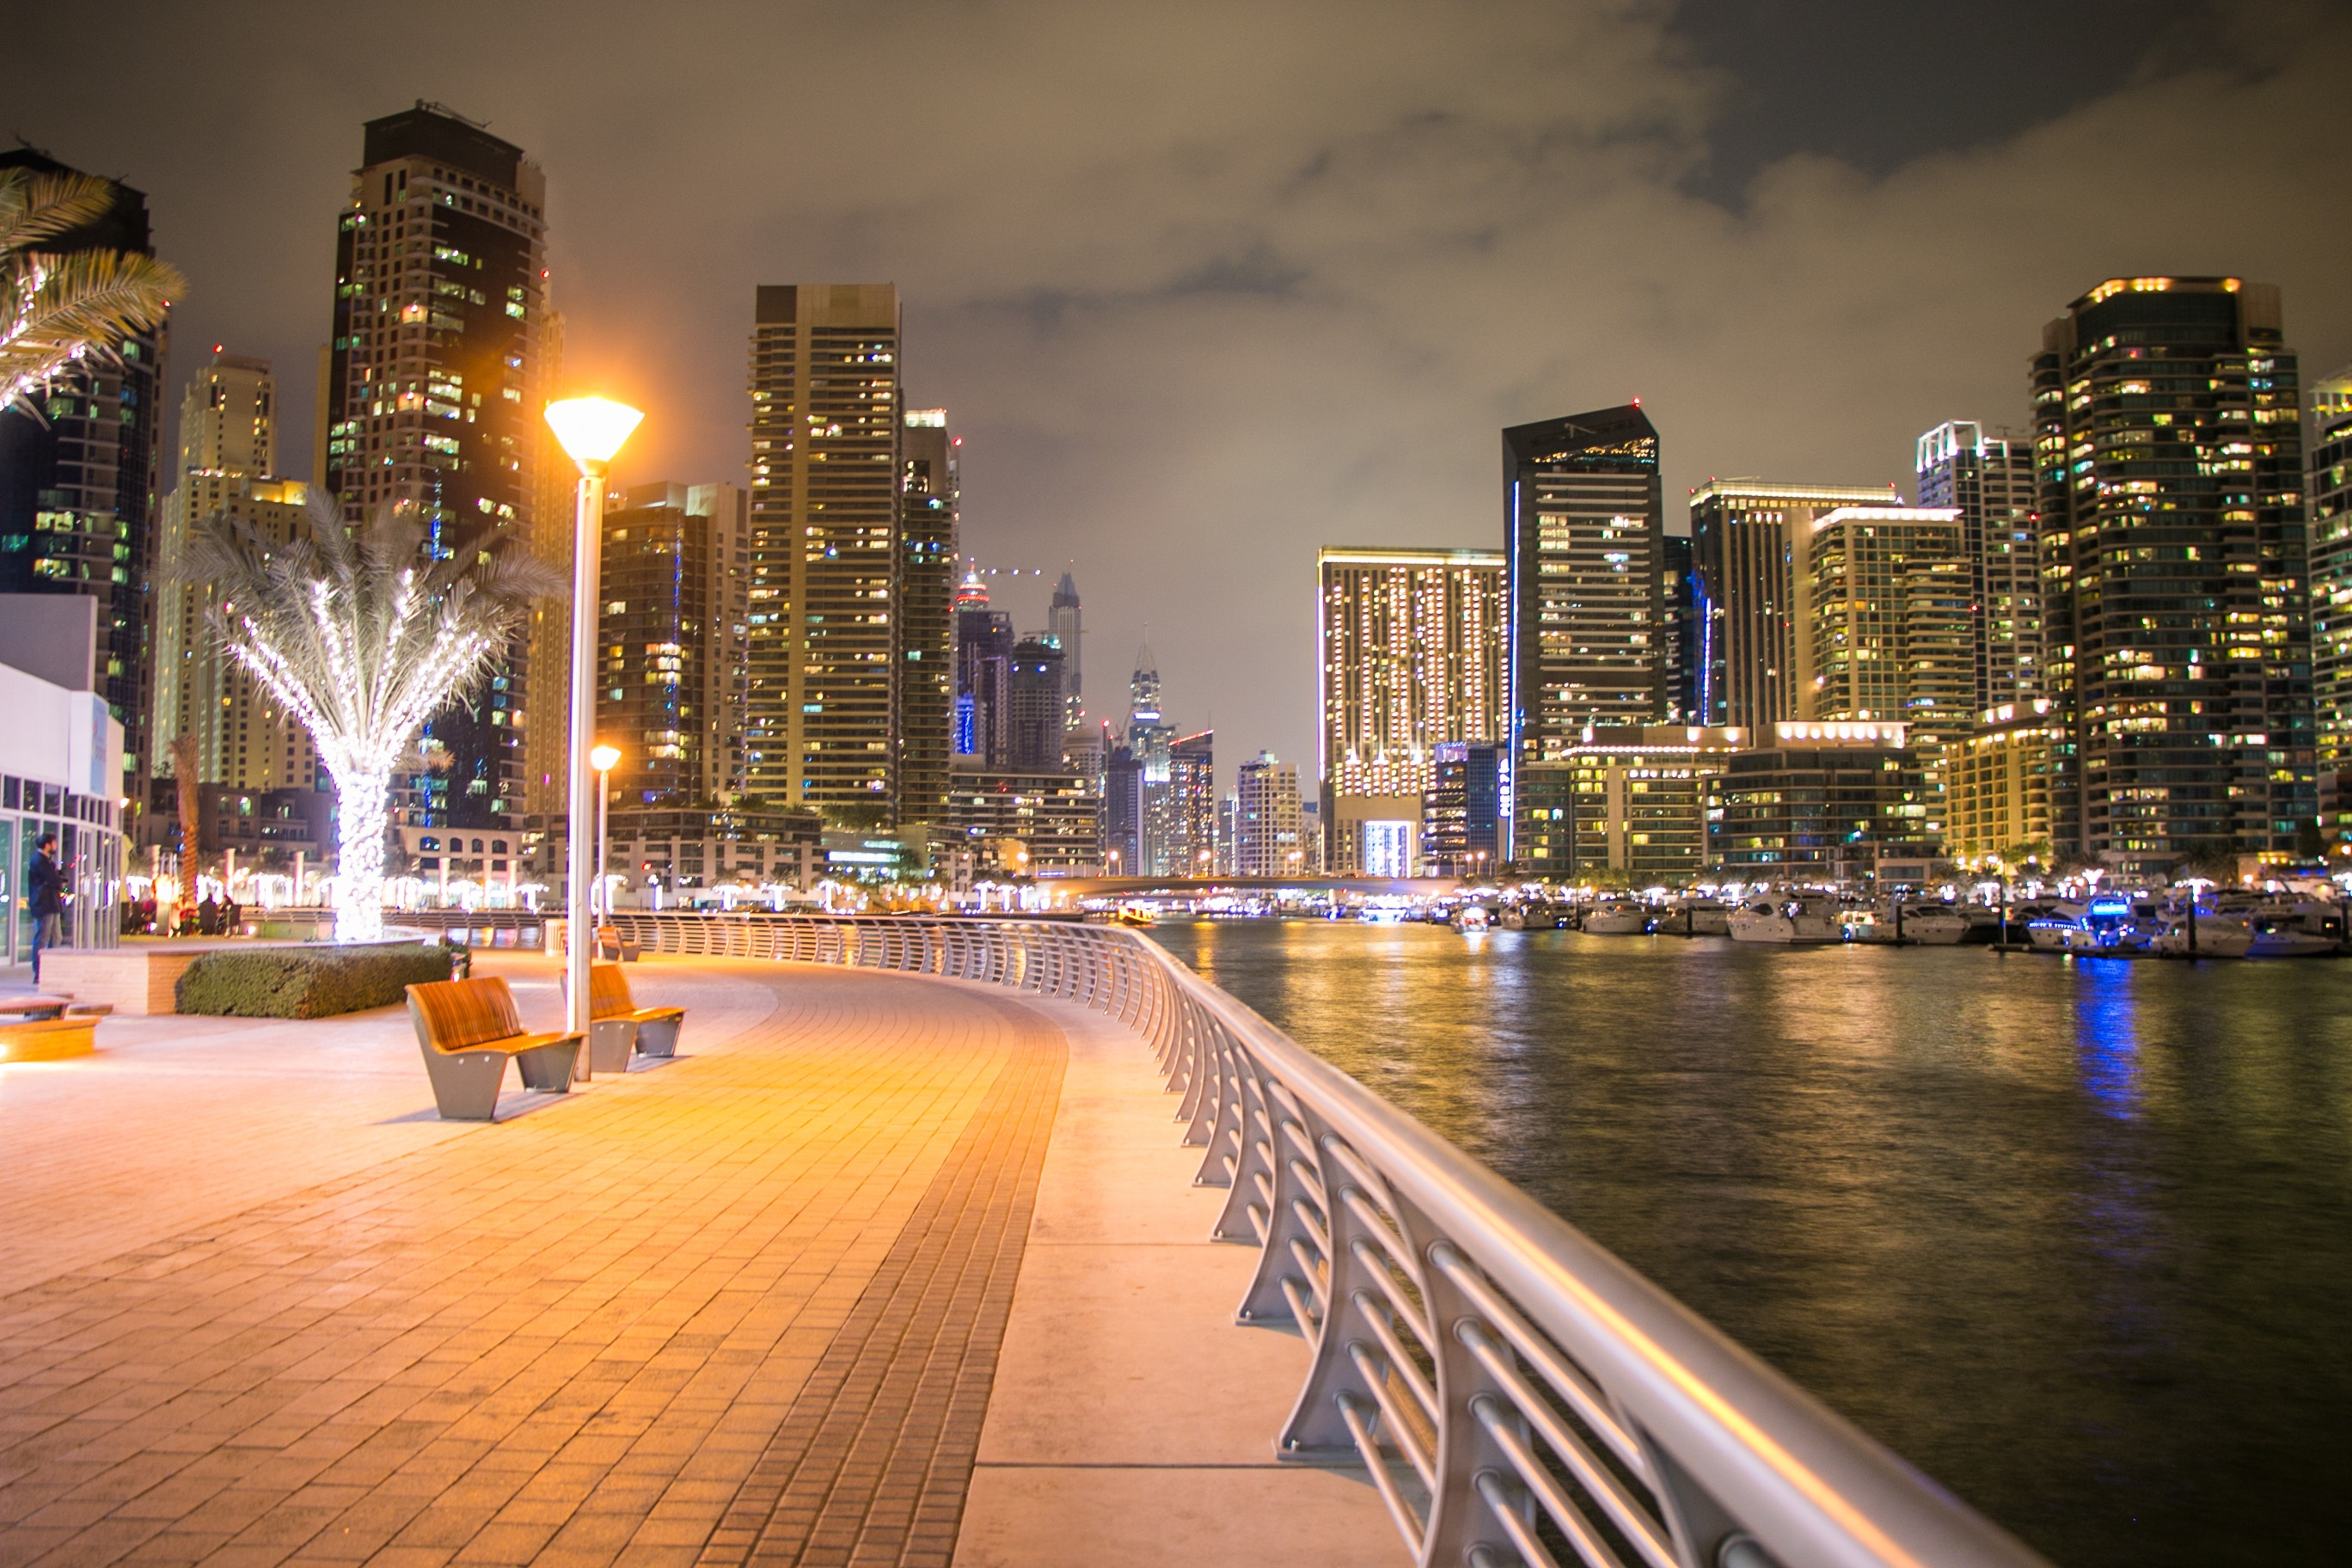 City Buildings With Lights, Metropolis, Waterfront, Watercrafts, Water, HQ Photo